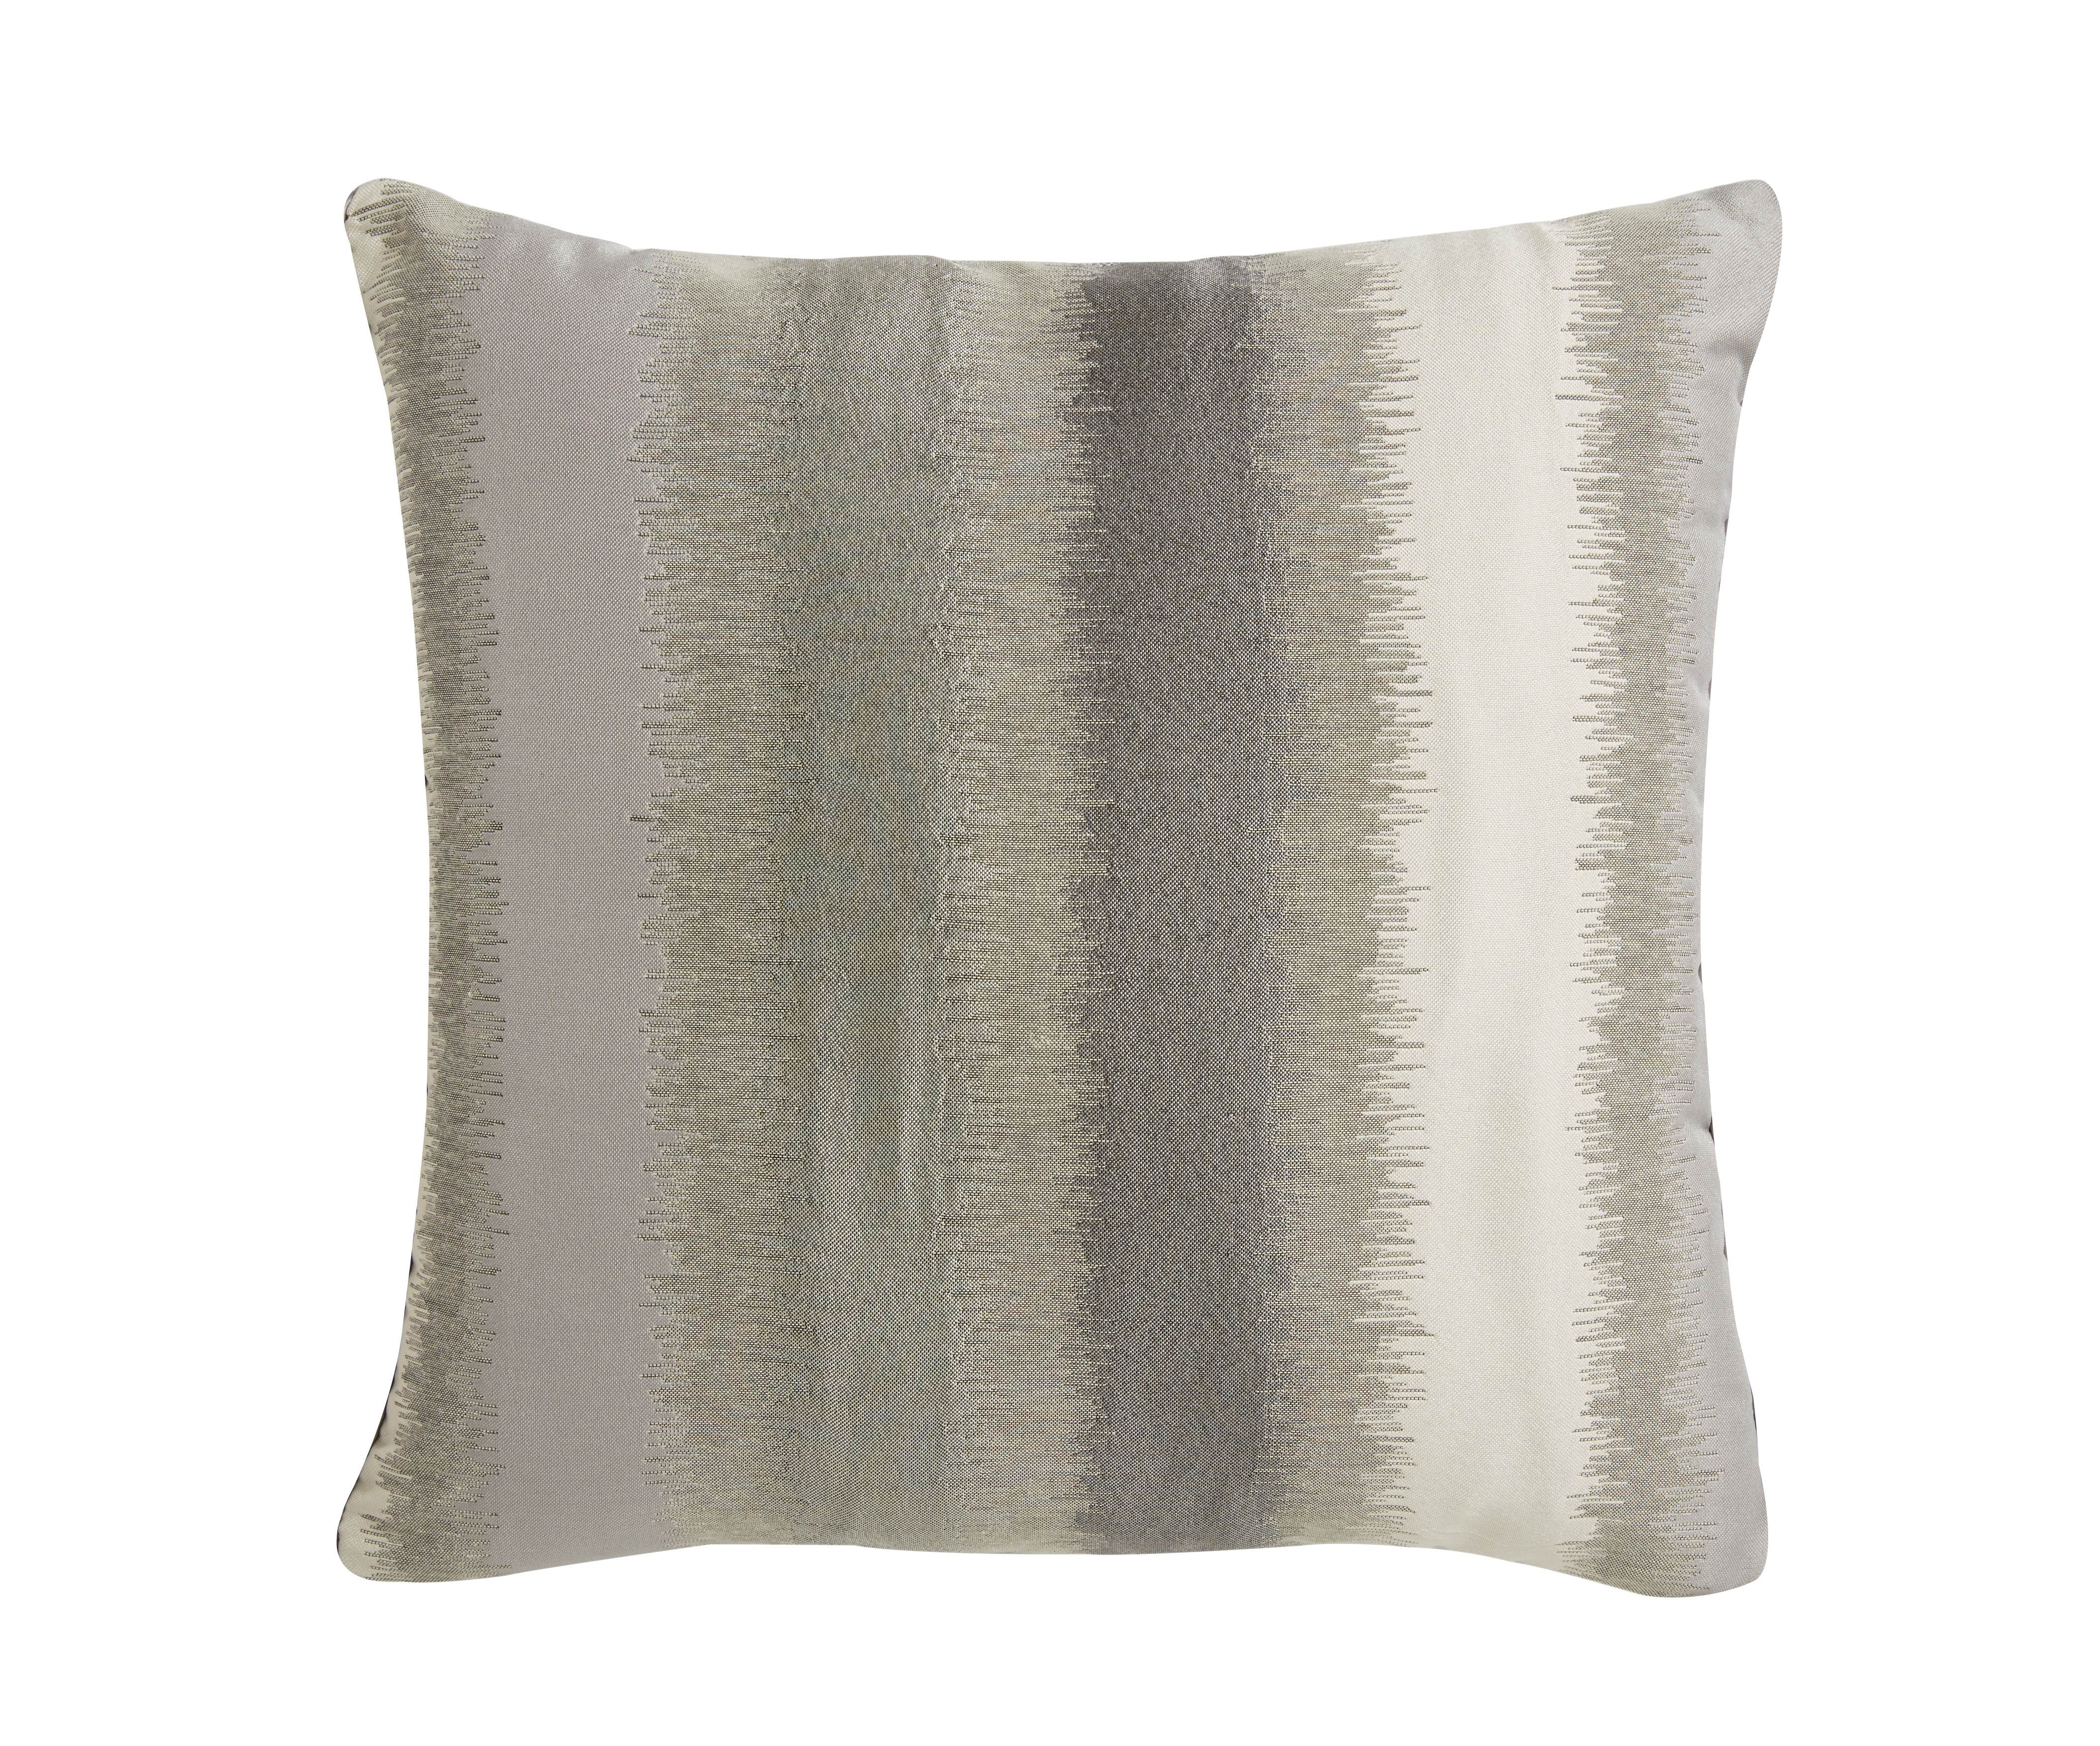 COUT0510633-GRIS-01